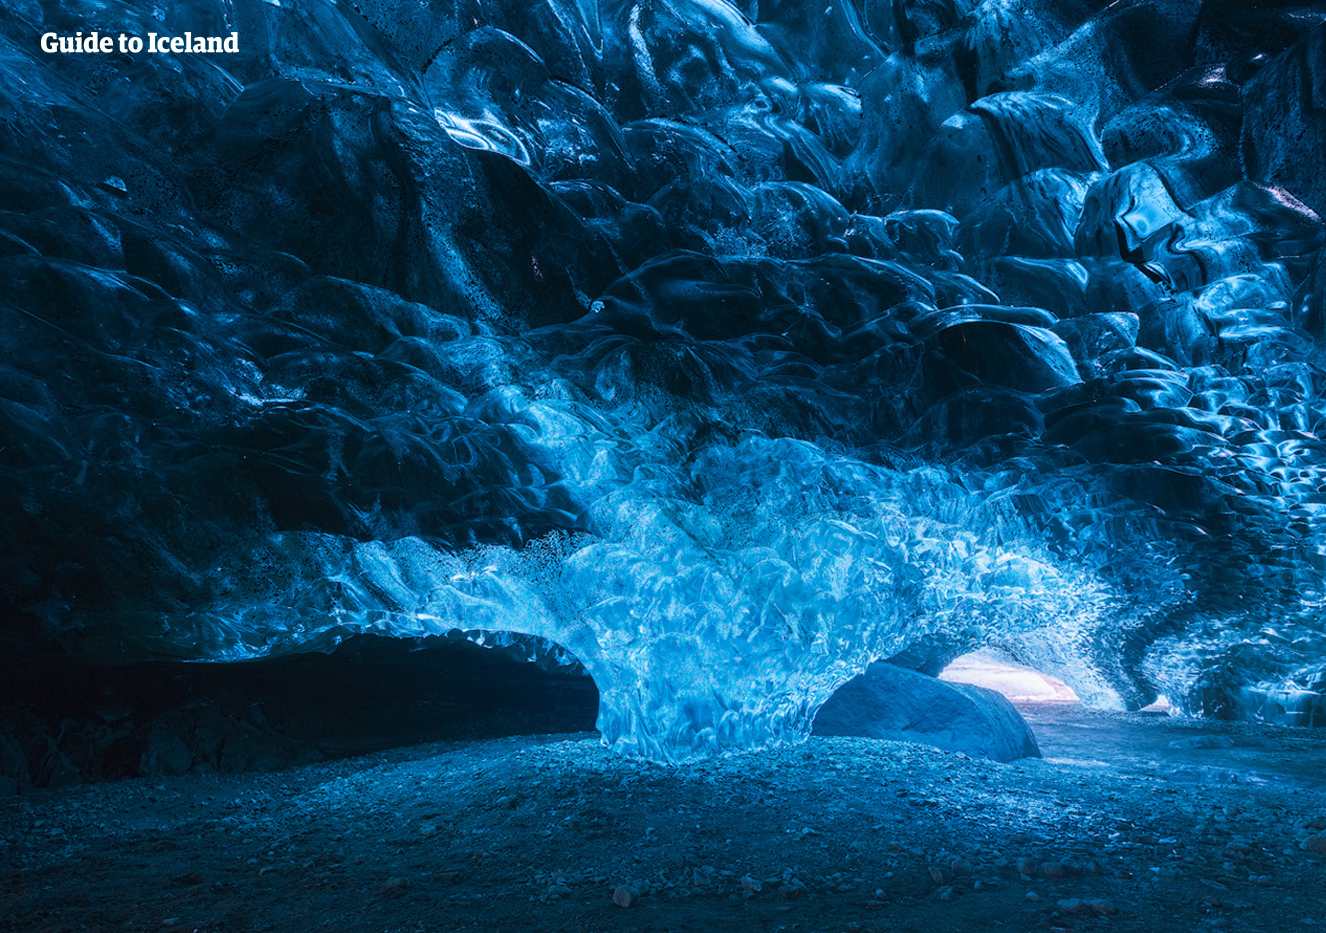 Blue Book Value >> 2 Day Winter Tour on a Budget | South Coast, Jokulsarlon & Blue Ice Cave